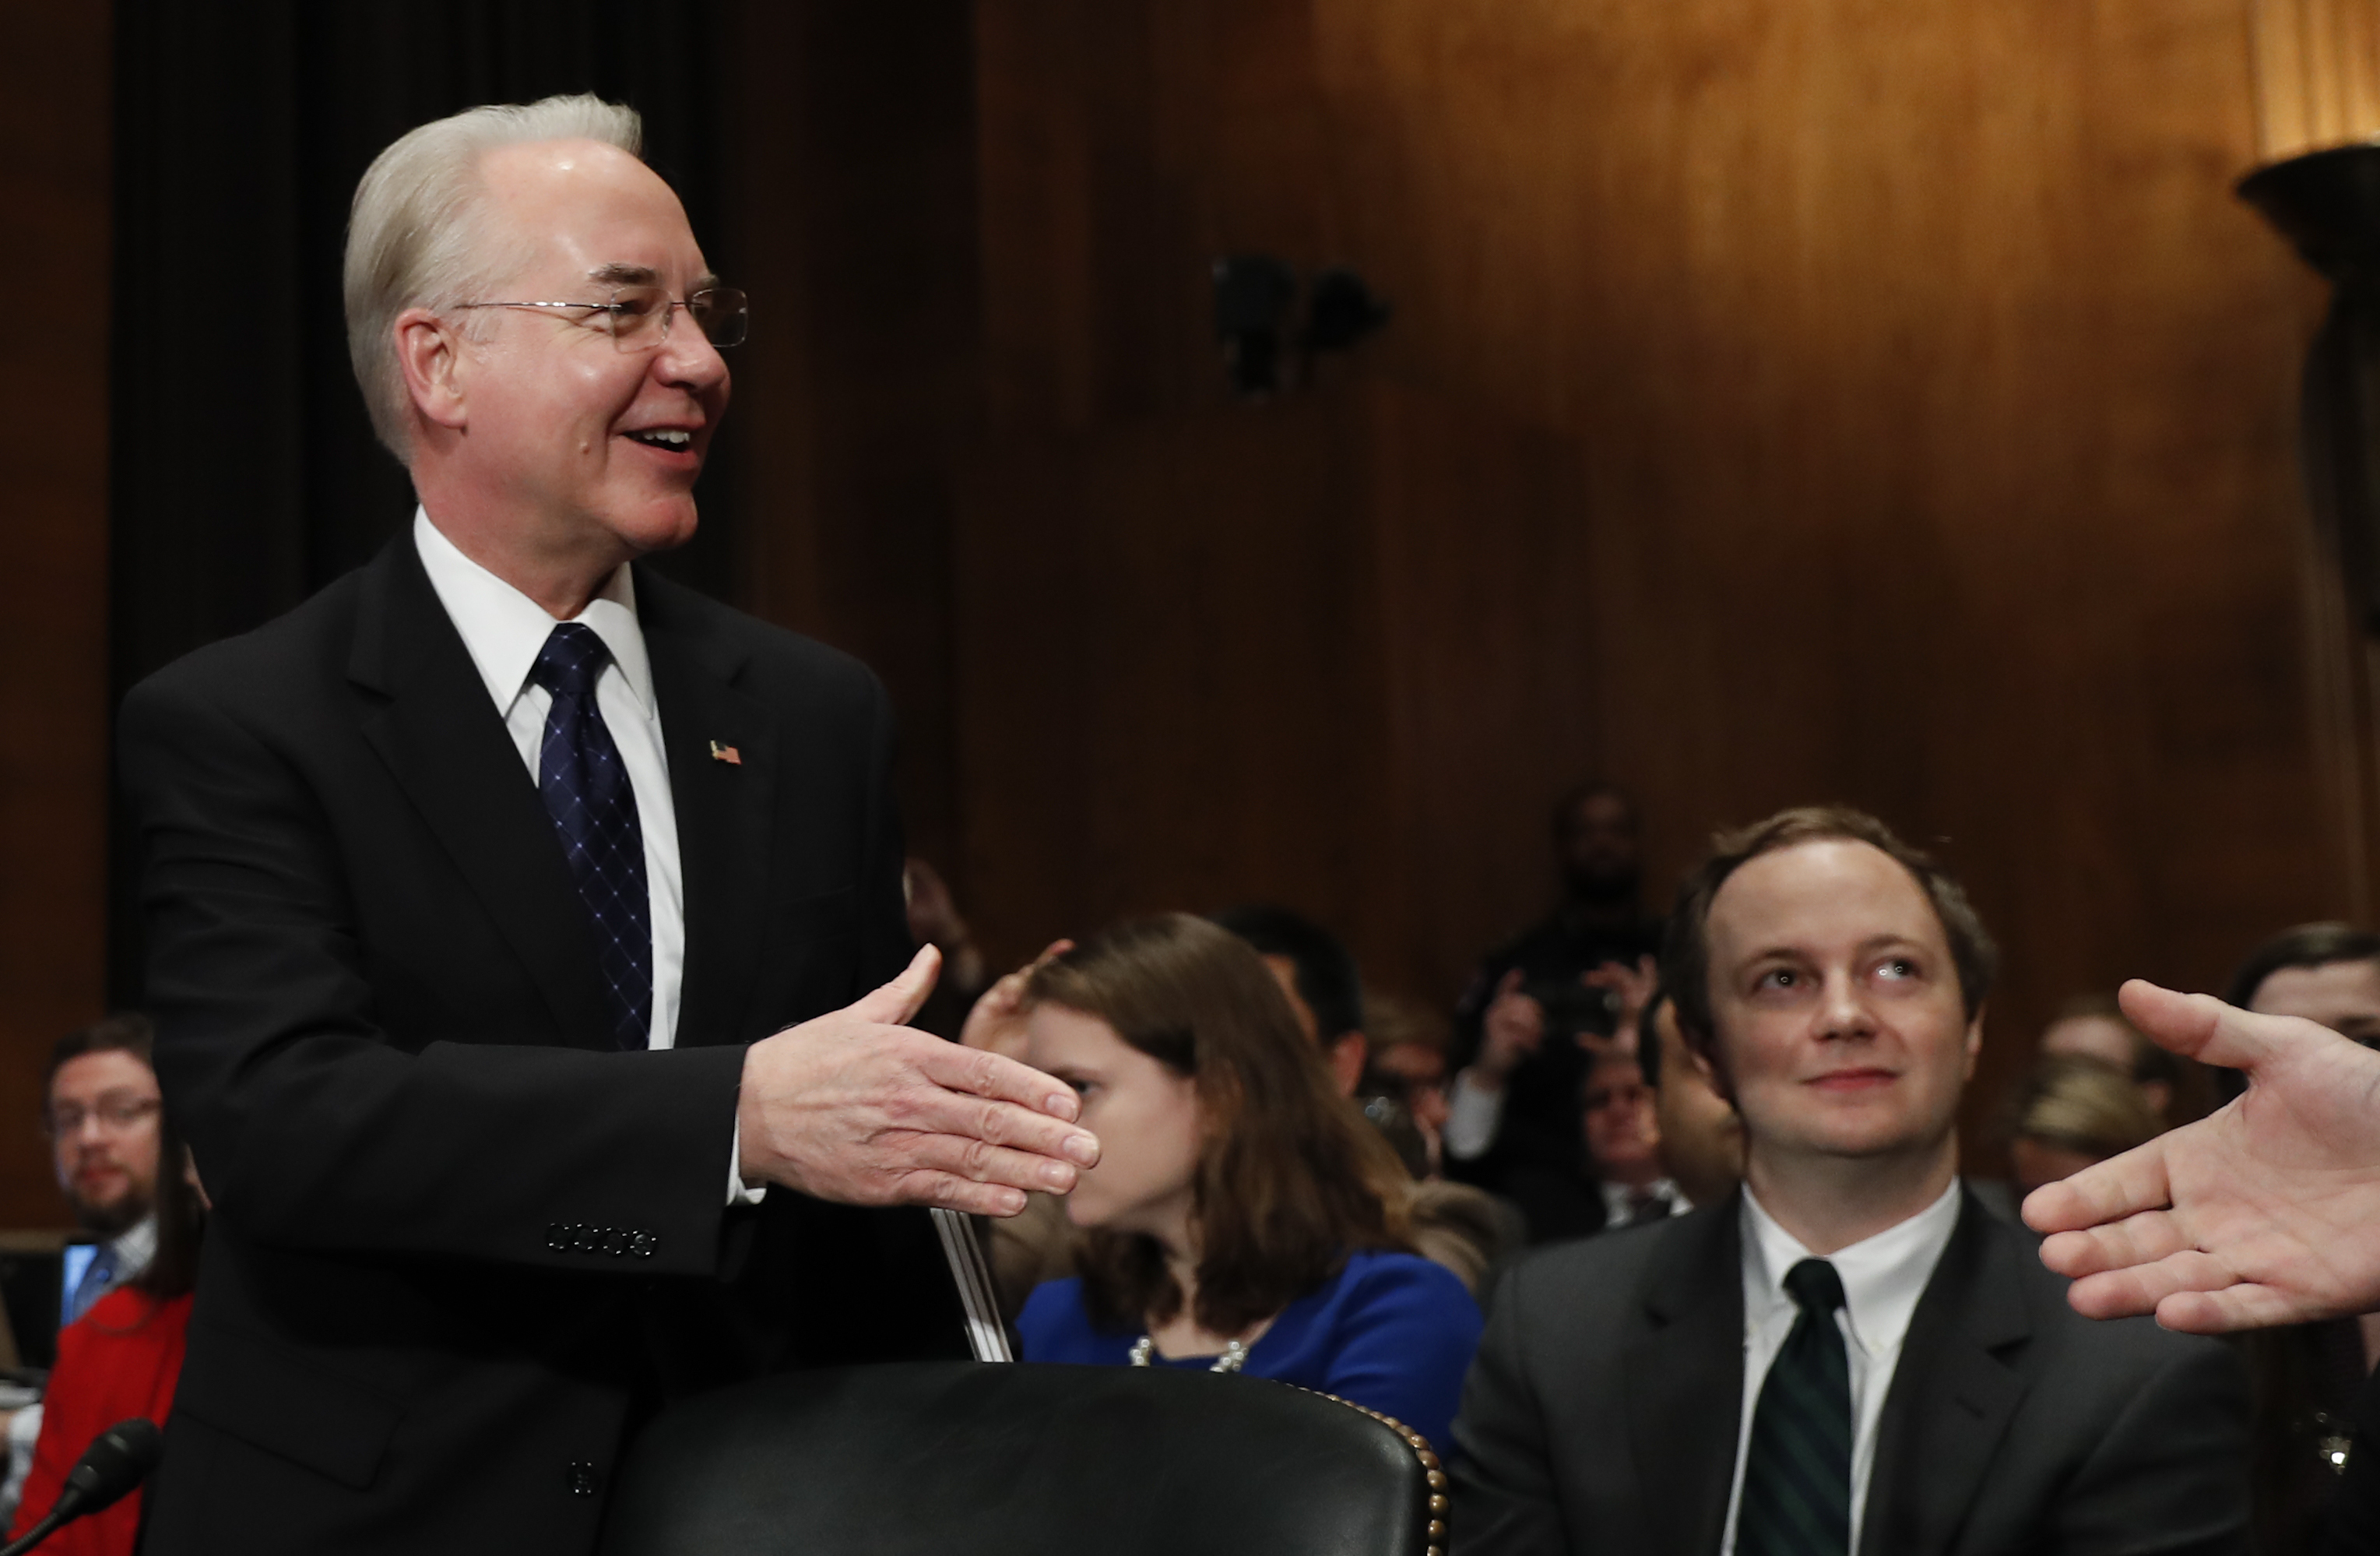 Health and Human Services Secretary-designate, Rep. Tom Price, R-Ga. (L) is greeted on Capitol Hill in Washington on Jan. 18, 2017, prior to testifying his confirmation hearing before the Senate Health, Education, Labor and Pensions Committee. (AP Photo/Carolyn Kaster)